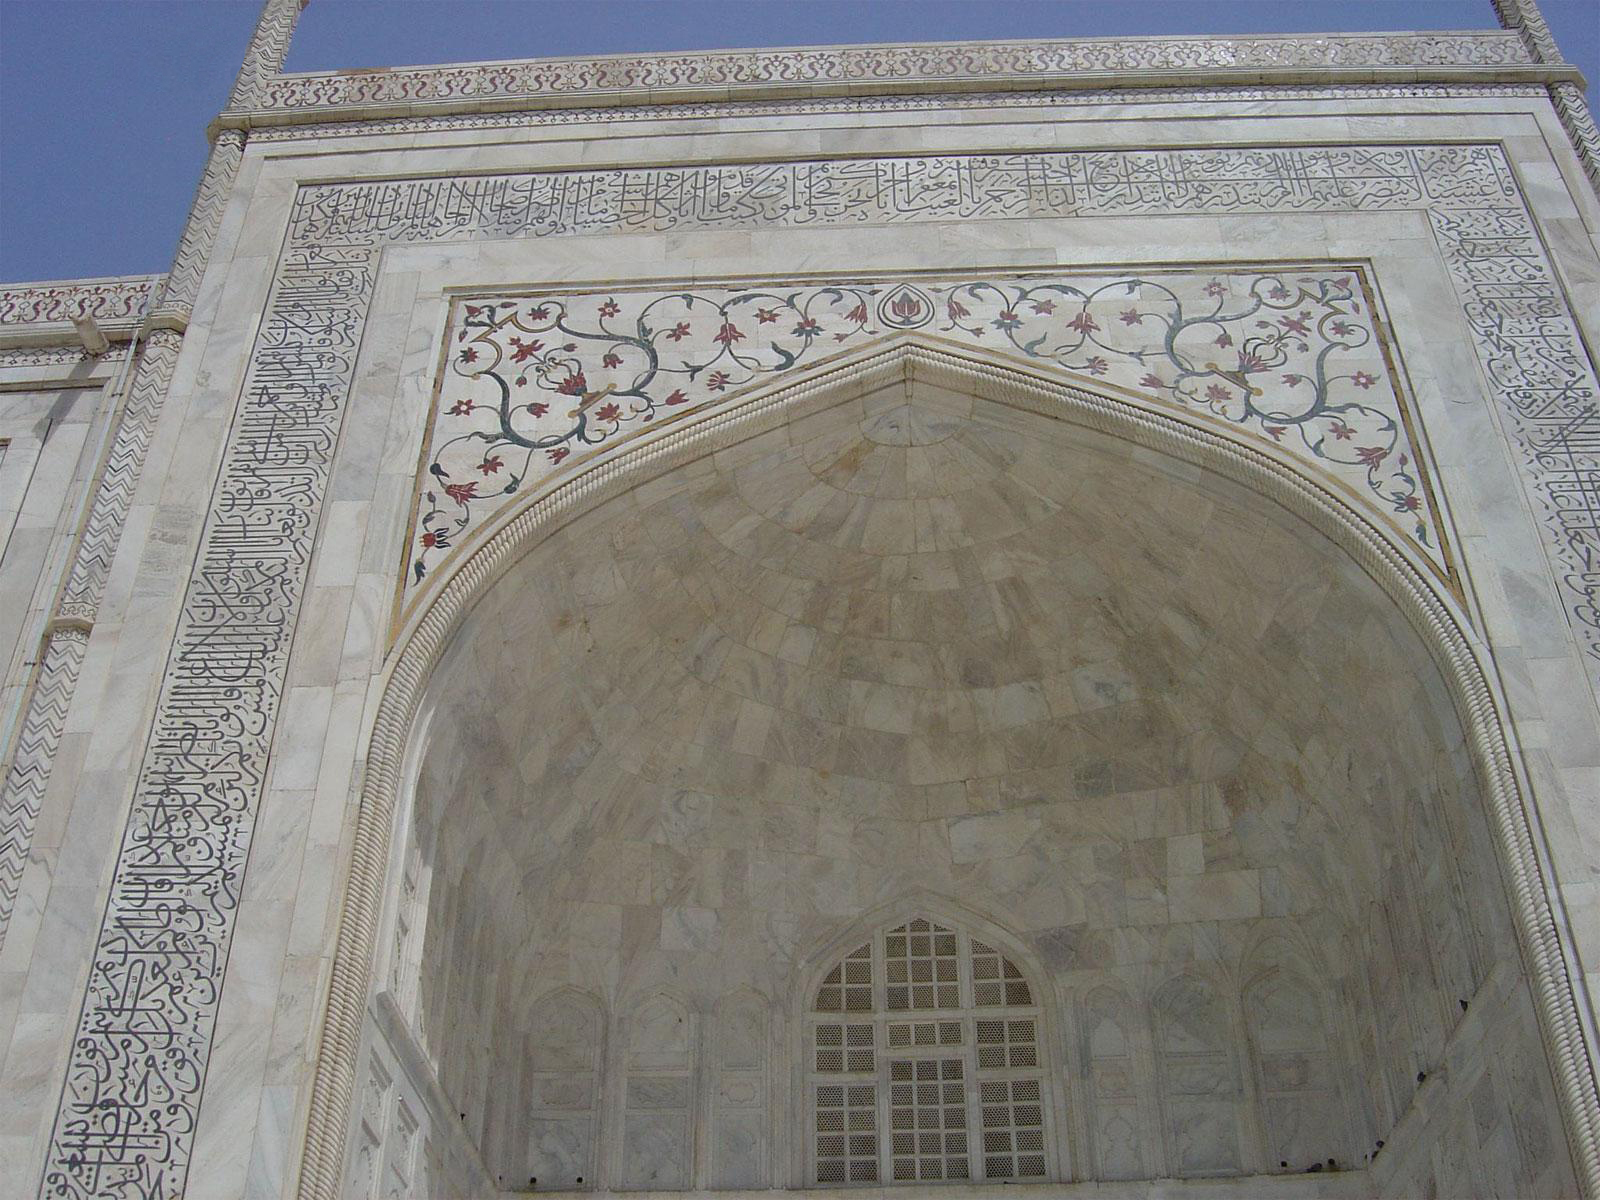 Taj Mahal, India, Arch detail overview